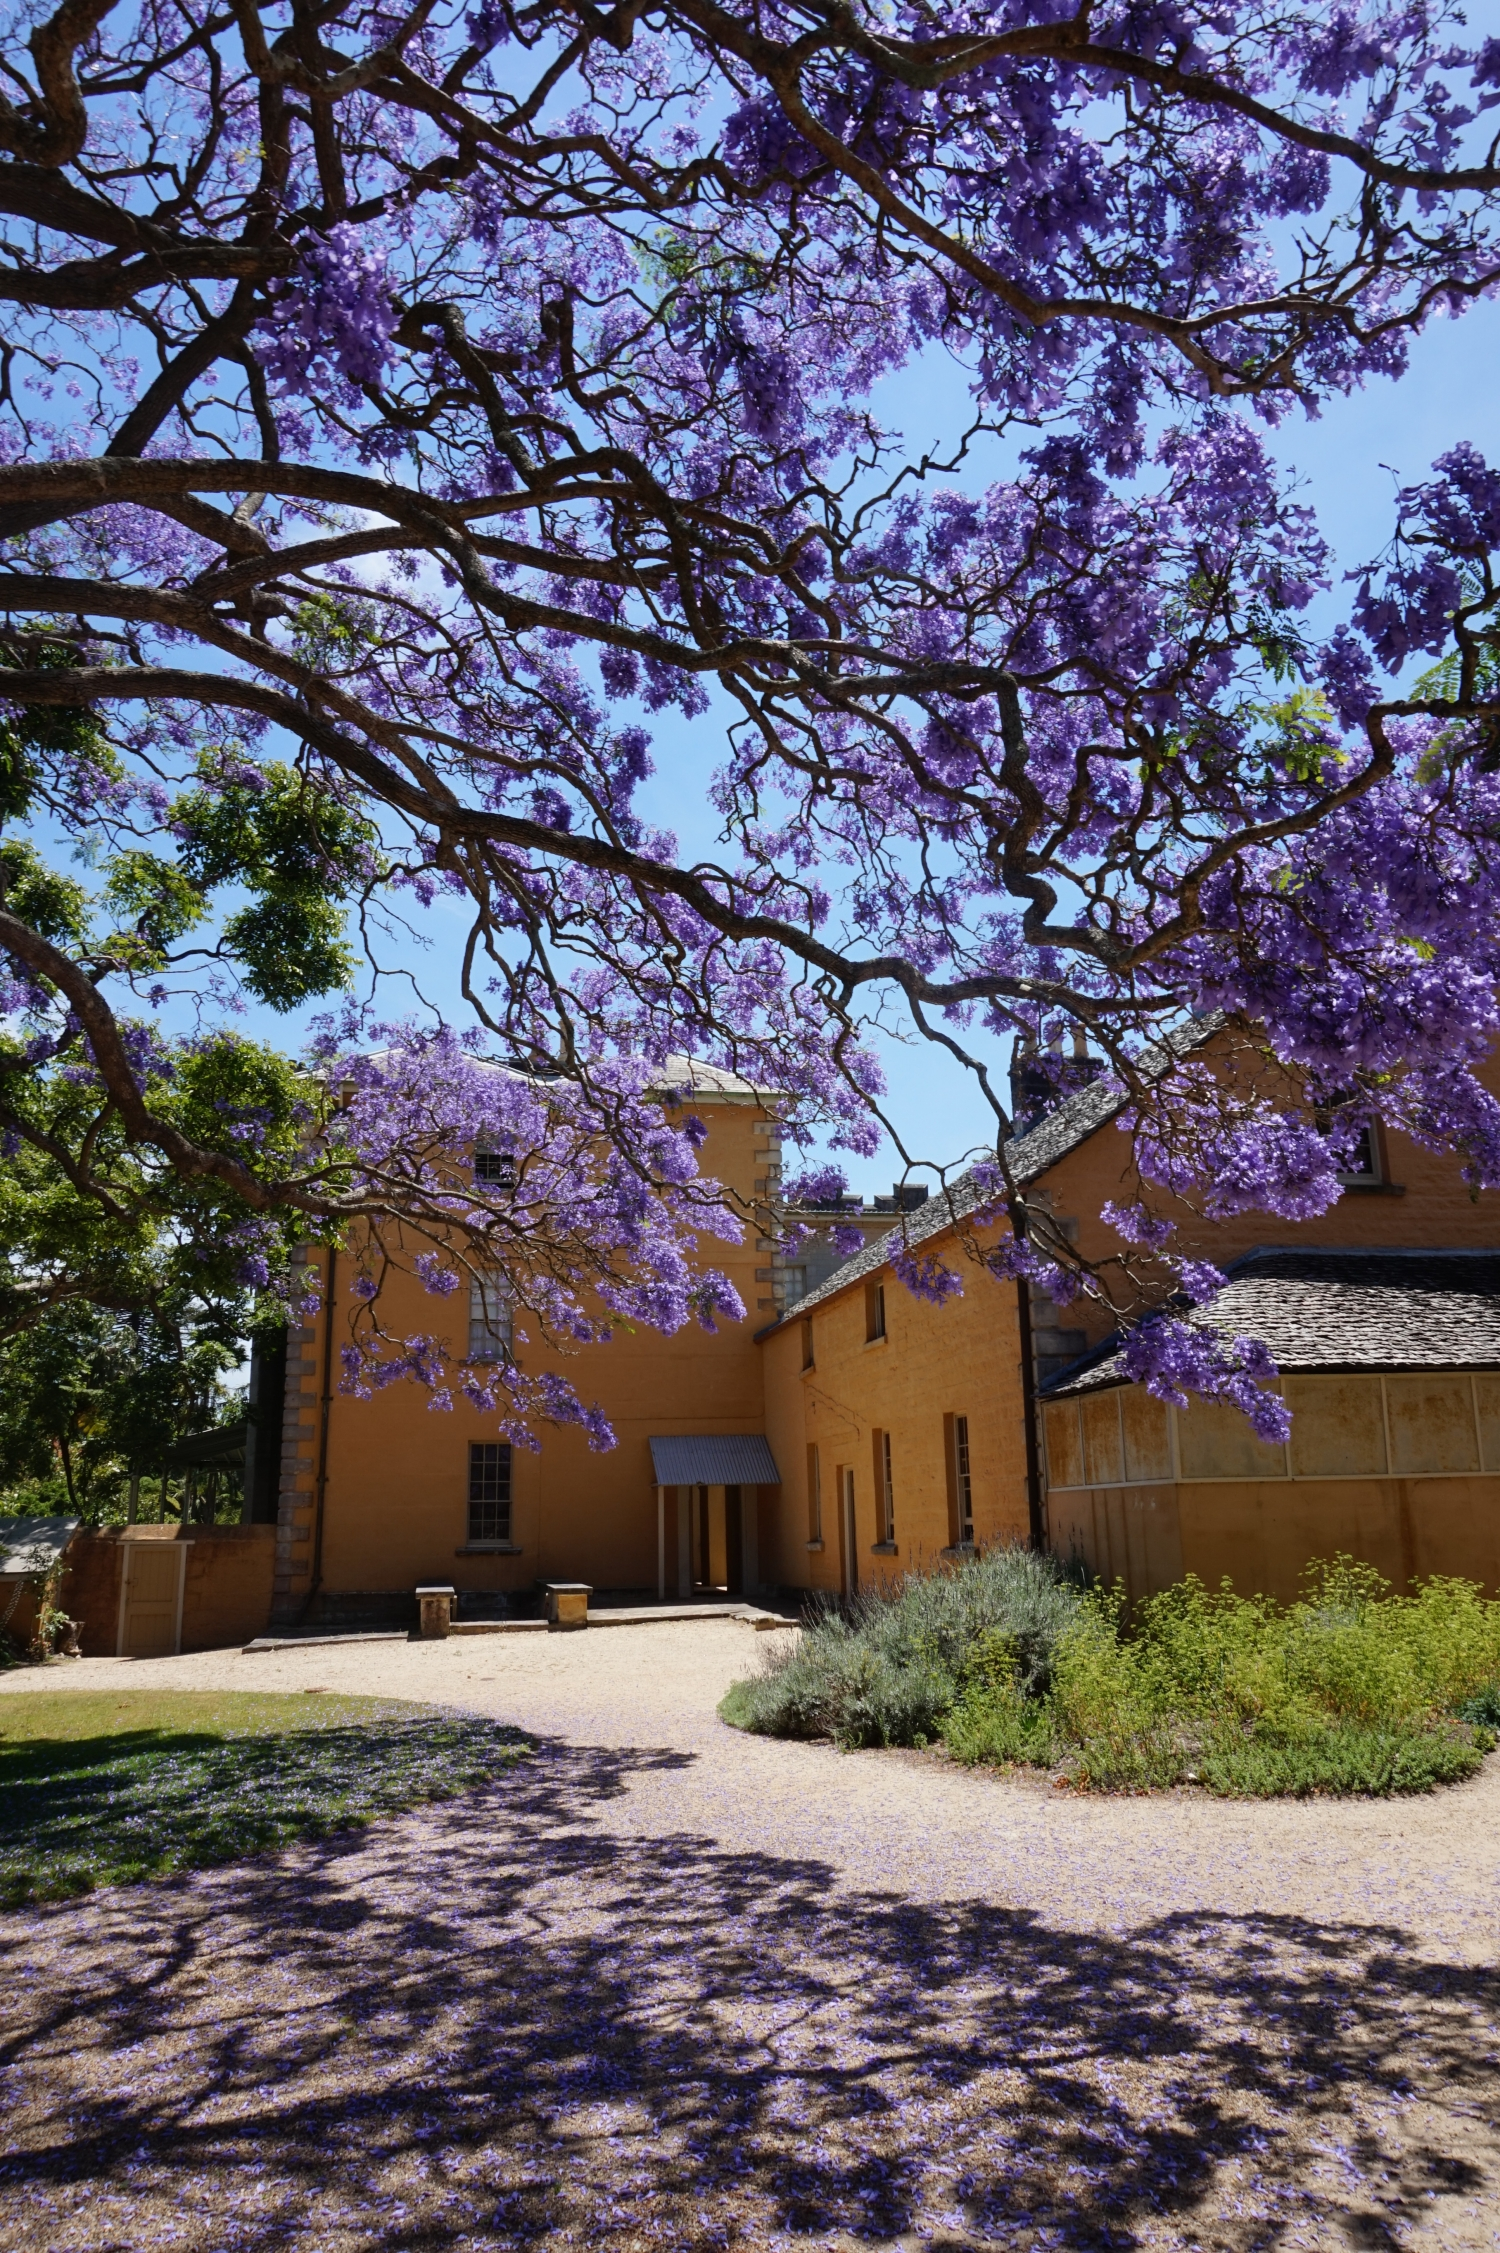 A jacaranda in flower in the courtyard at Vaucluse House